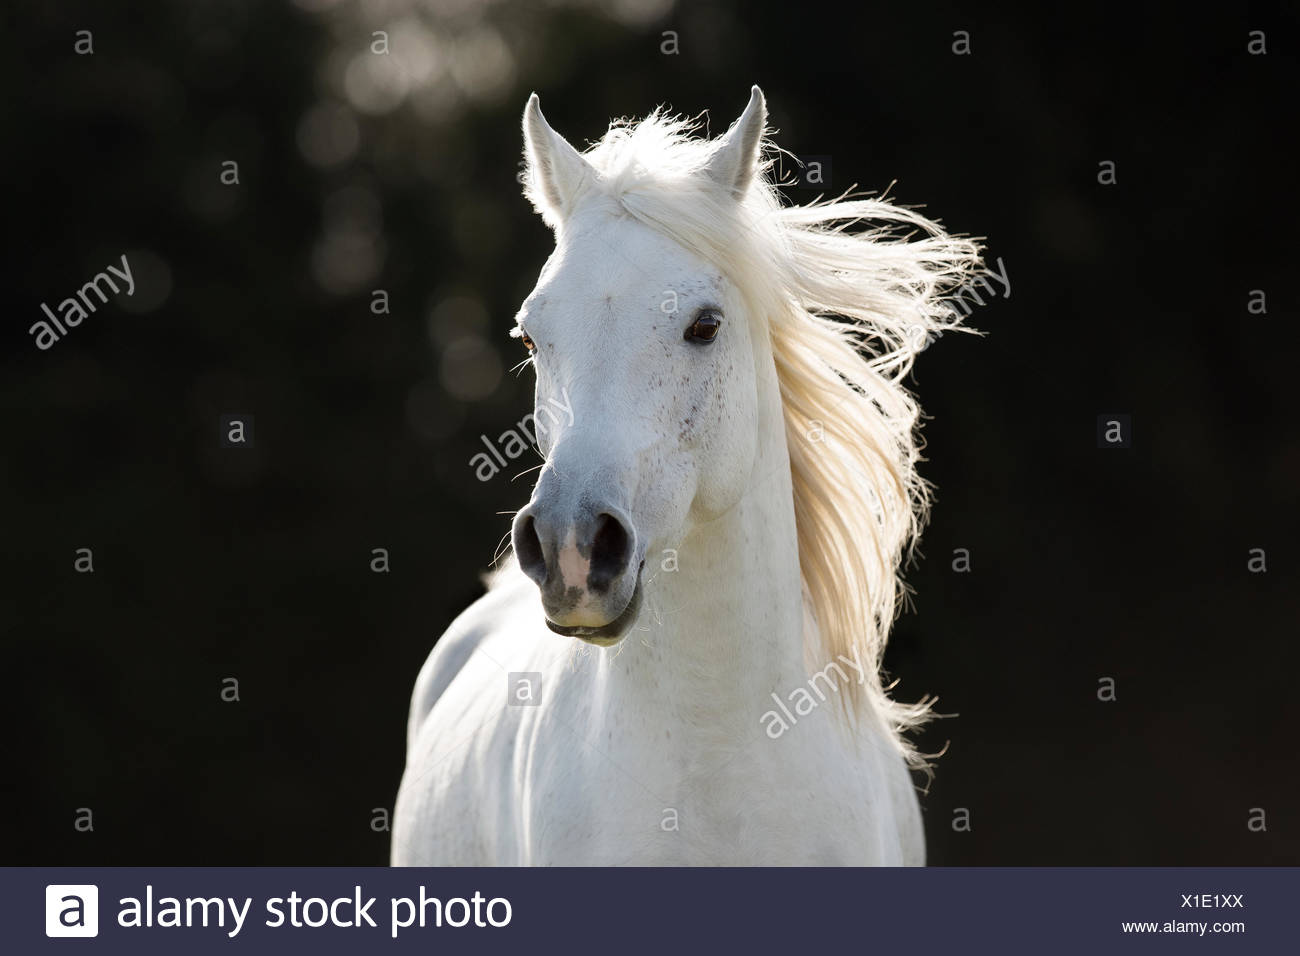 White Arabian stallion galloping, portrait - Stock Image